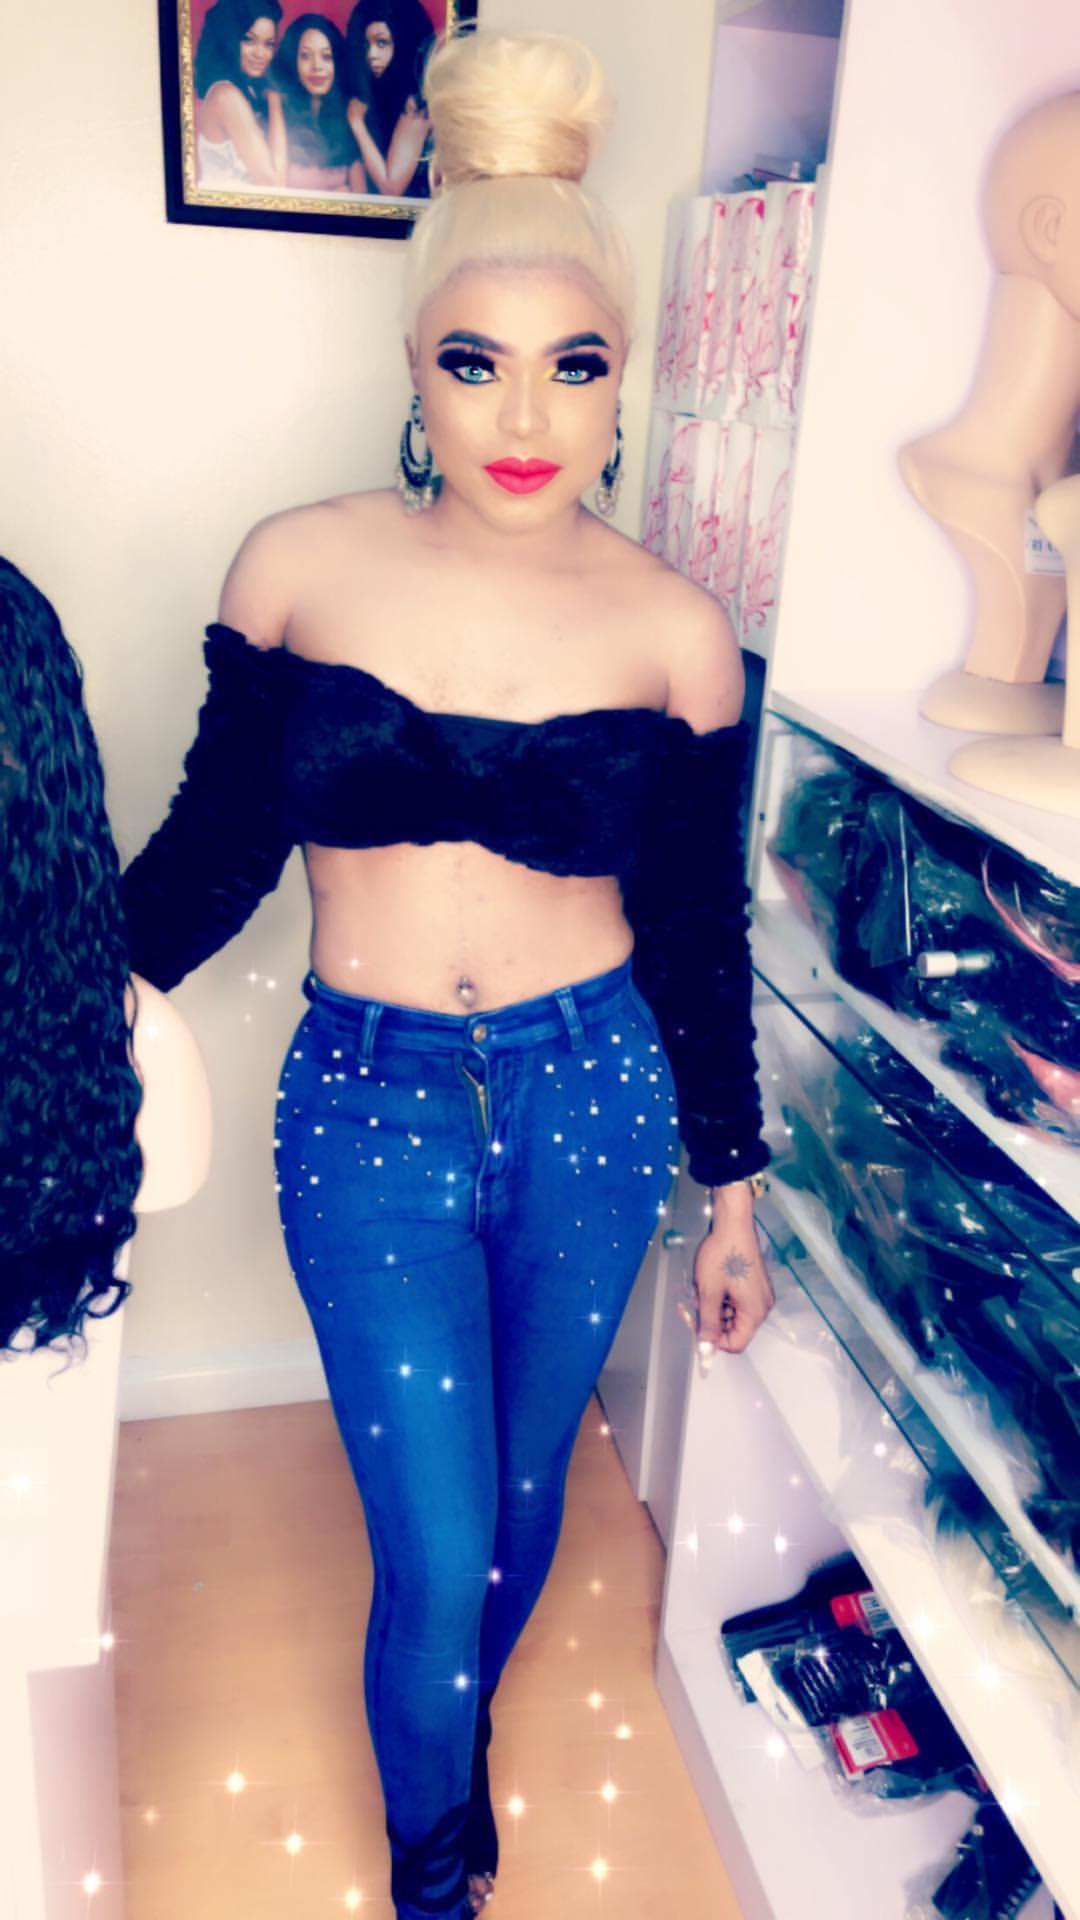 bobrisky-steps-out-in-cropped-top-shows-off-his-midriff-photos-1